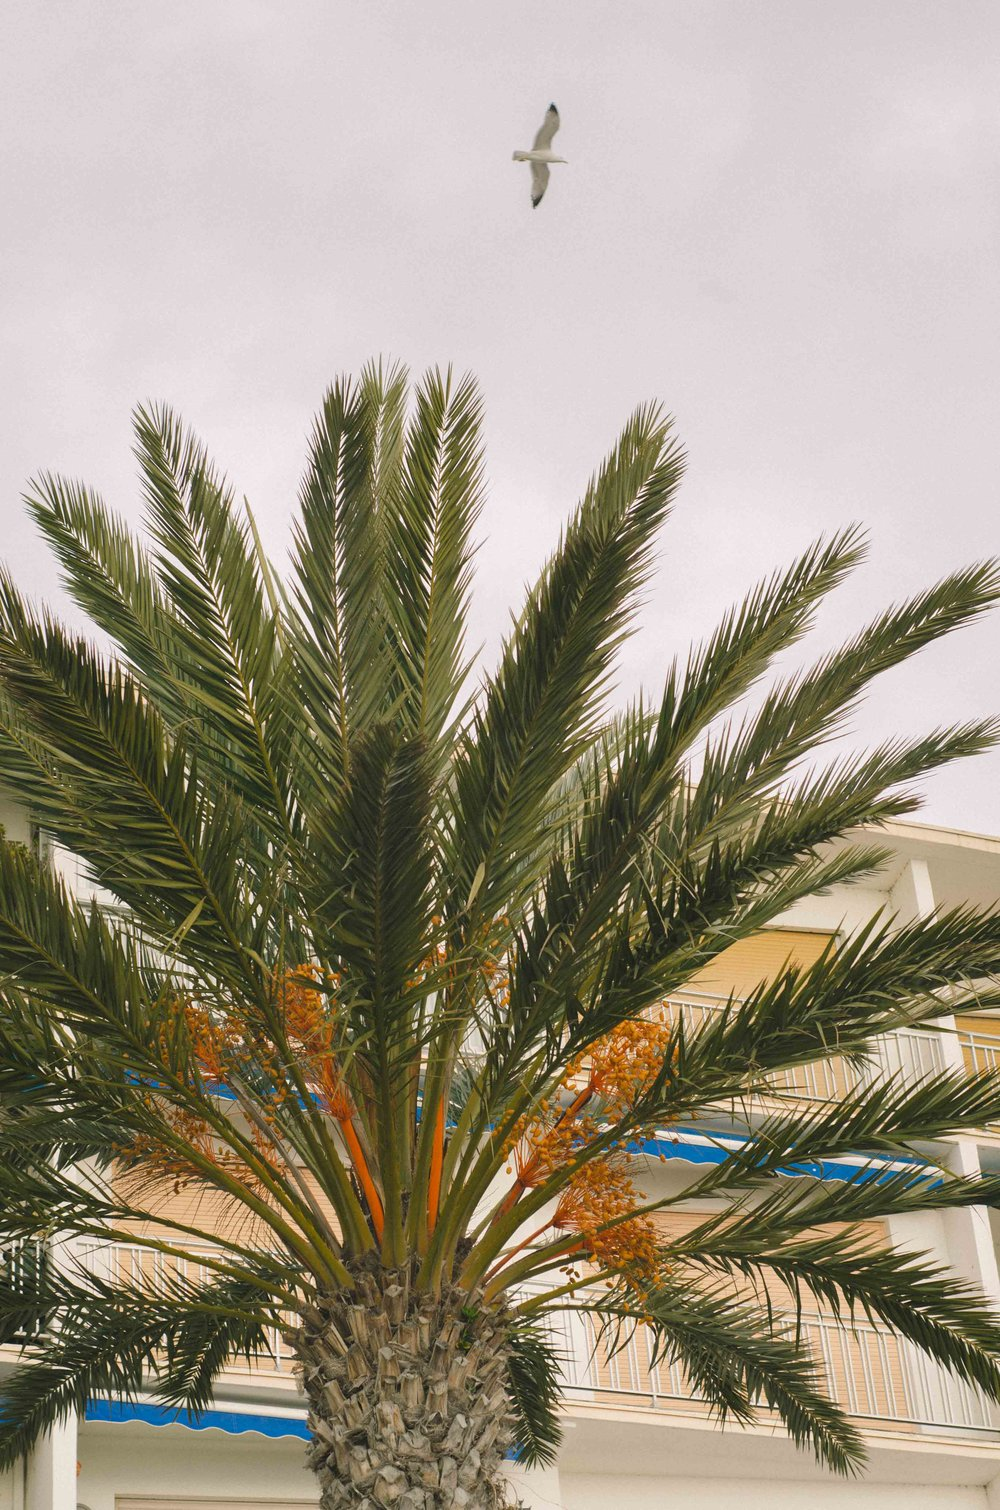 march 5 // seagull and palm tree